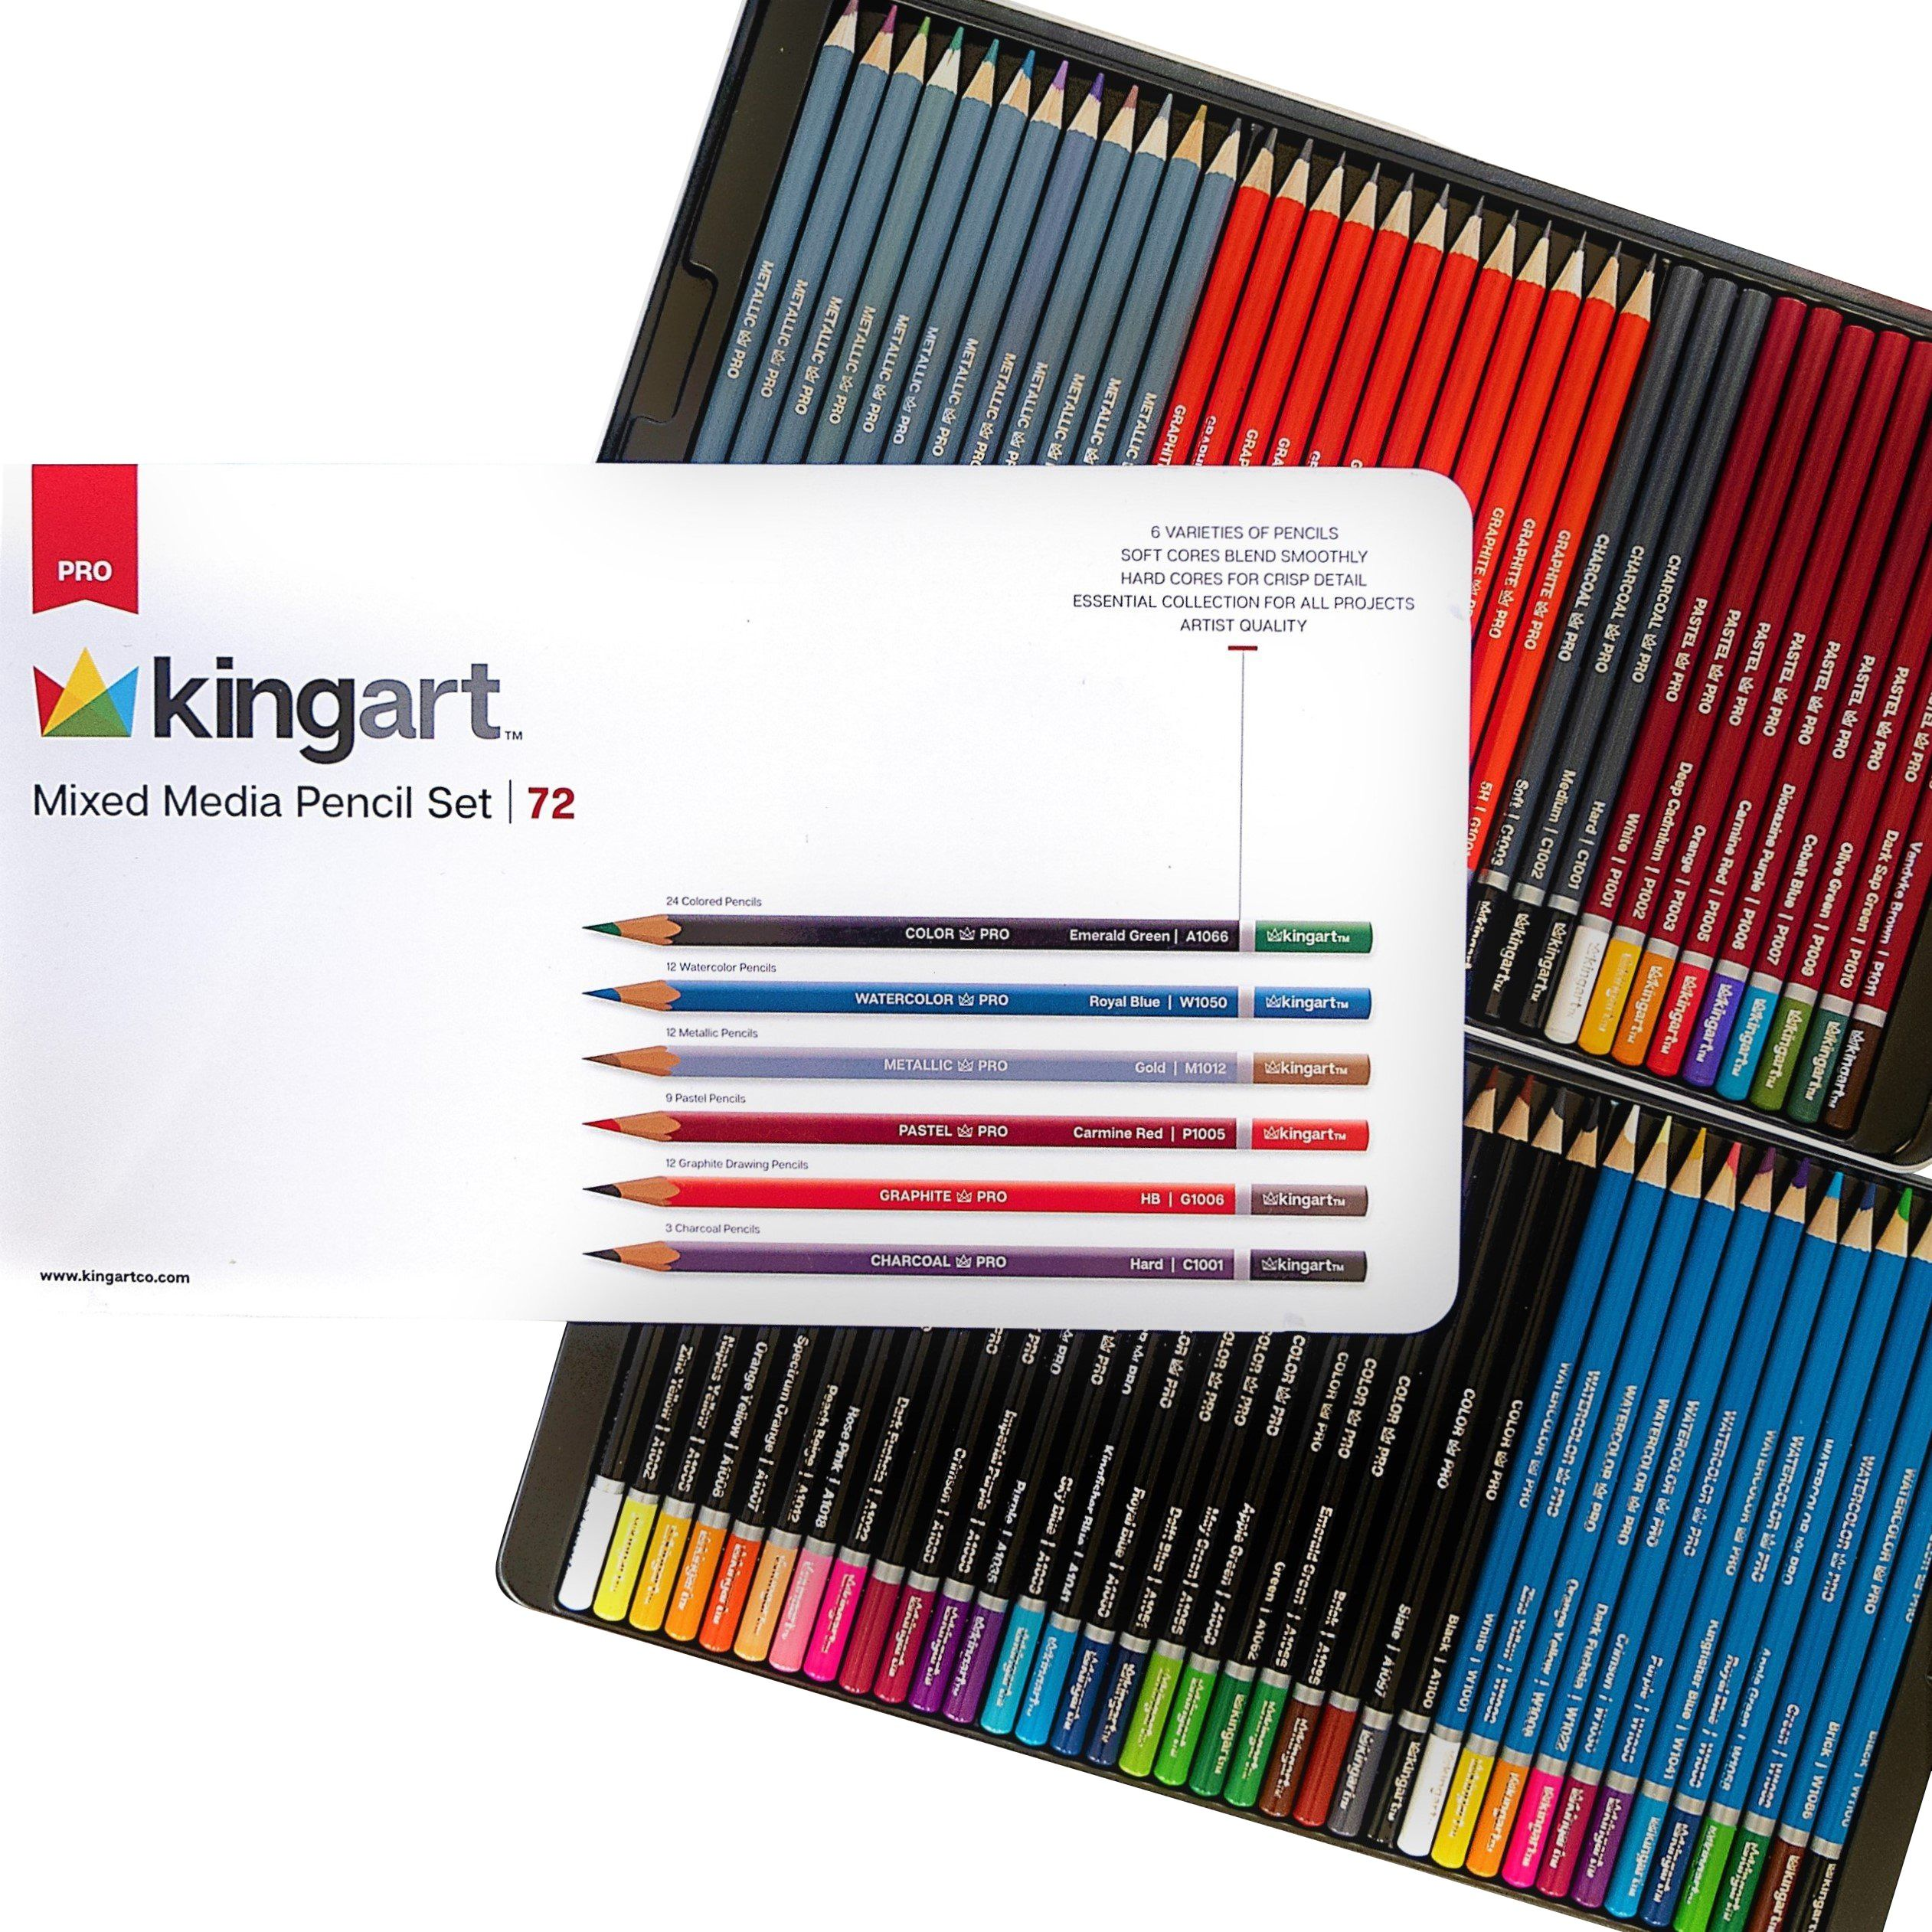 Kingart Pro Ultimate Collection Of Pencils Tin Case Set Of 72